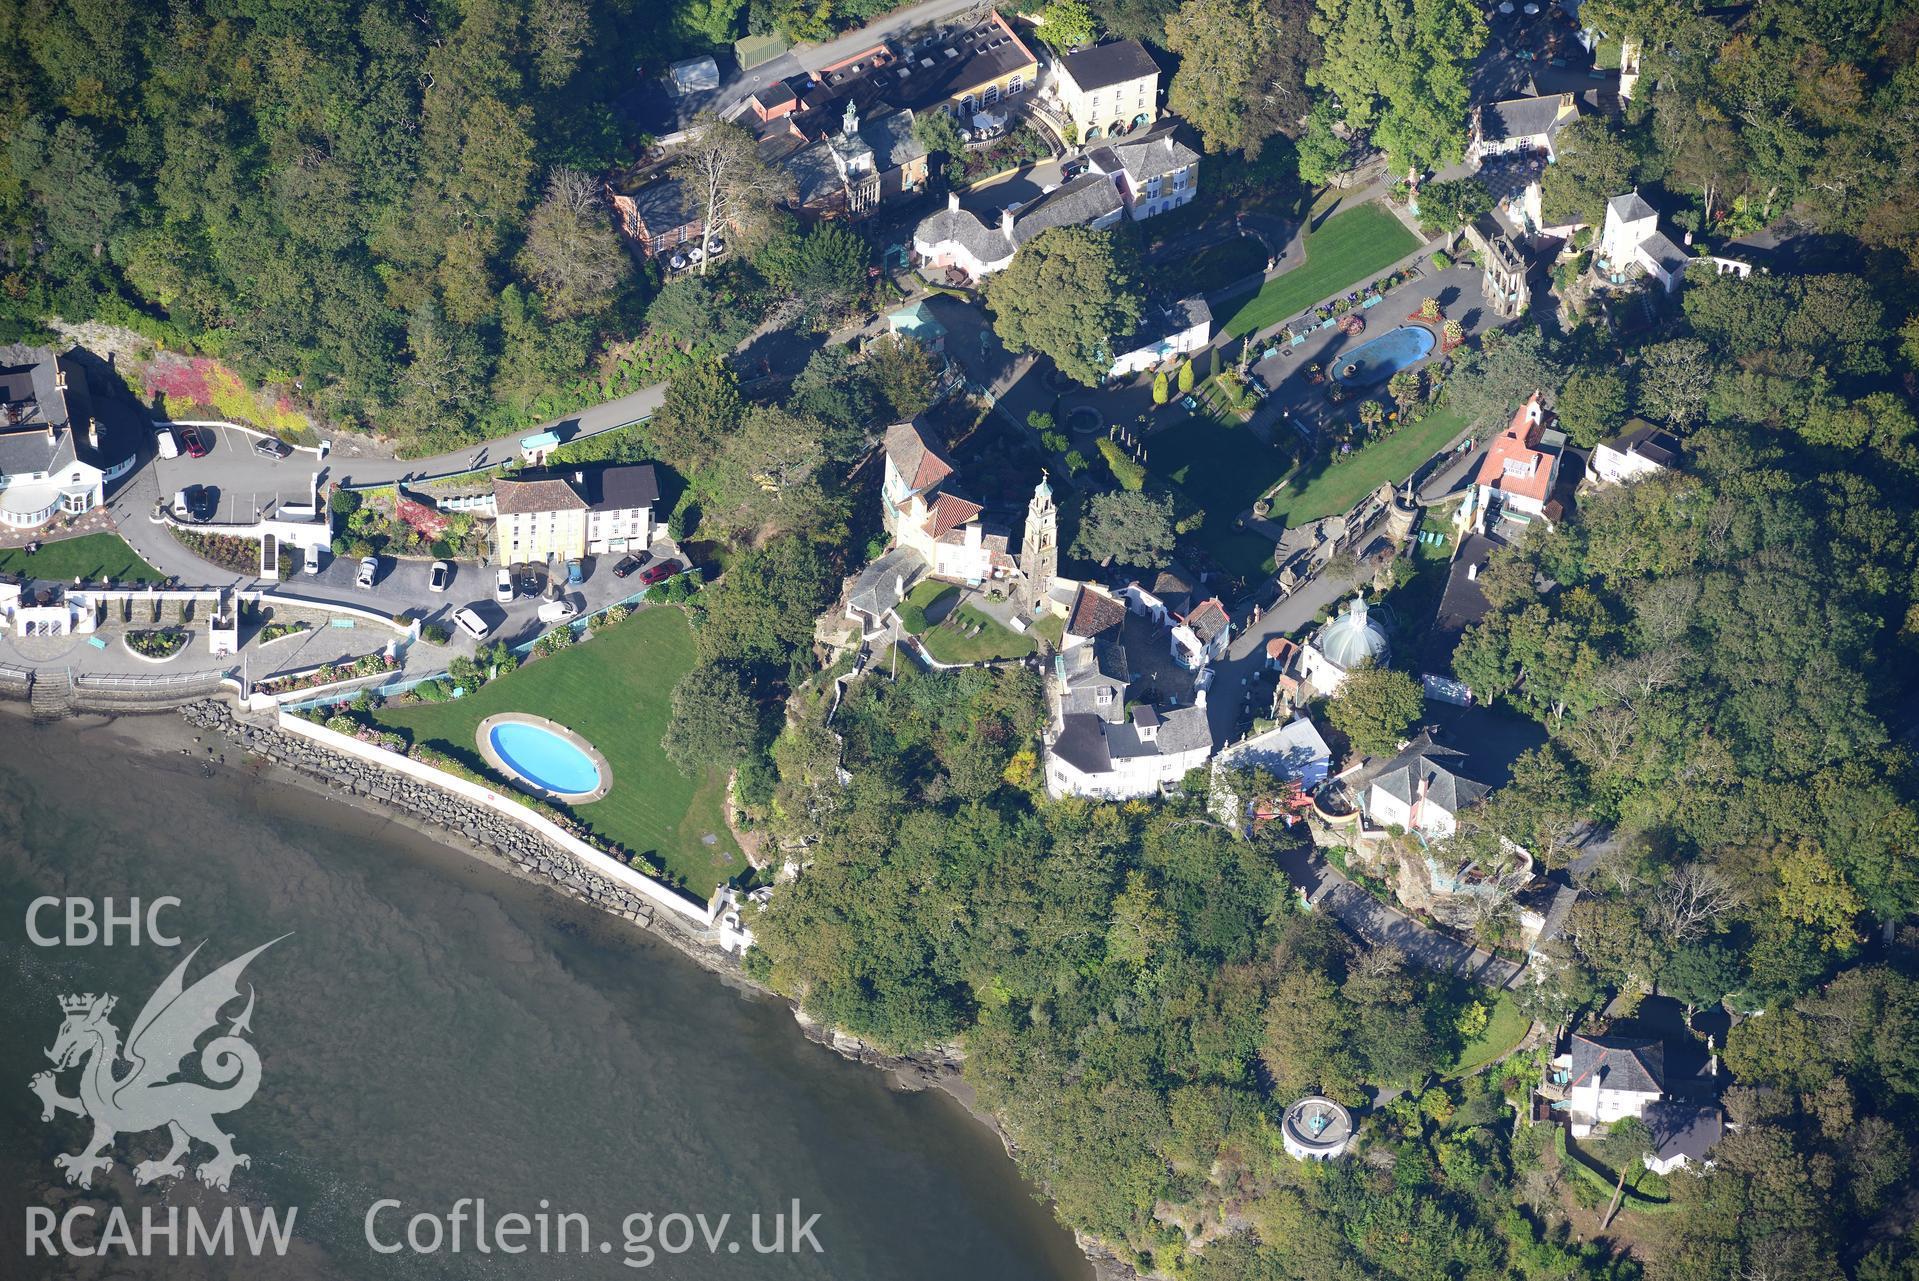 The Campanile tower, Portmeirion, south of Porthmadog. Oblique aerial photograph taken during the Royal Commission's programme of archaeological aerial reconnaissance by Toby Driver on 2nd October 2015.